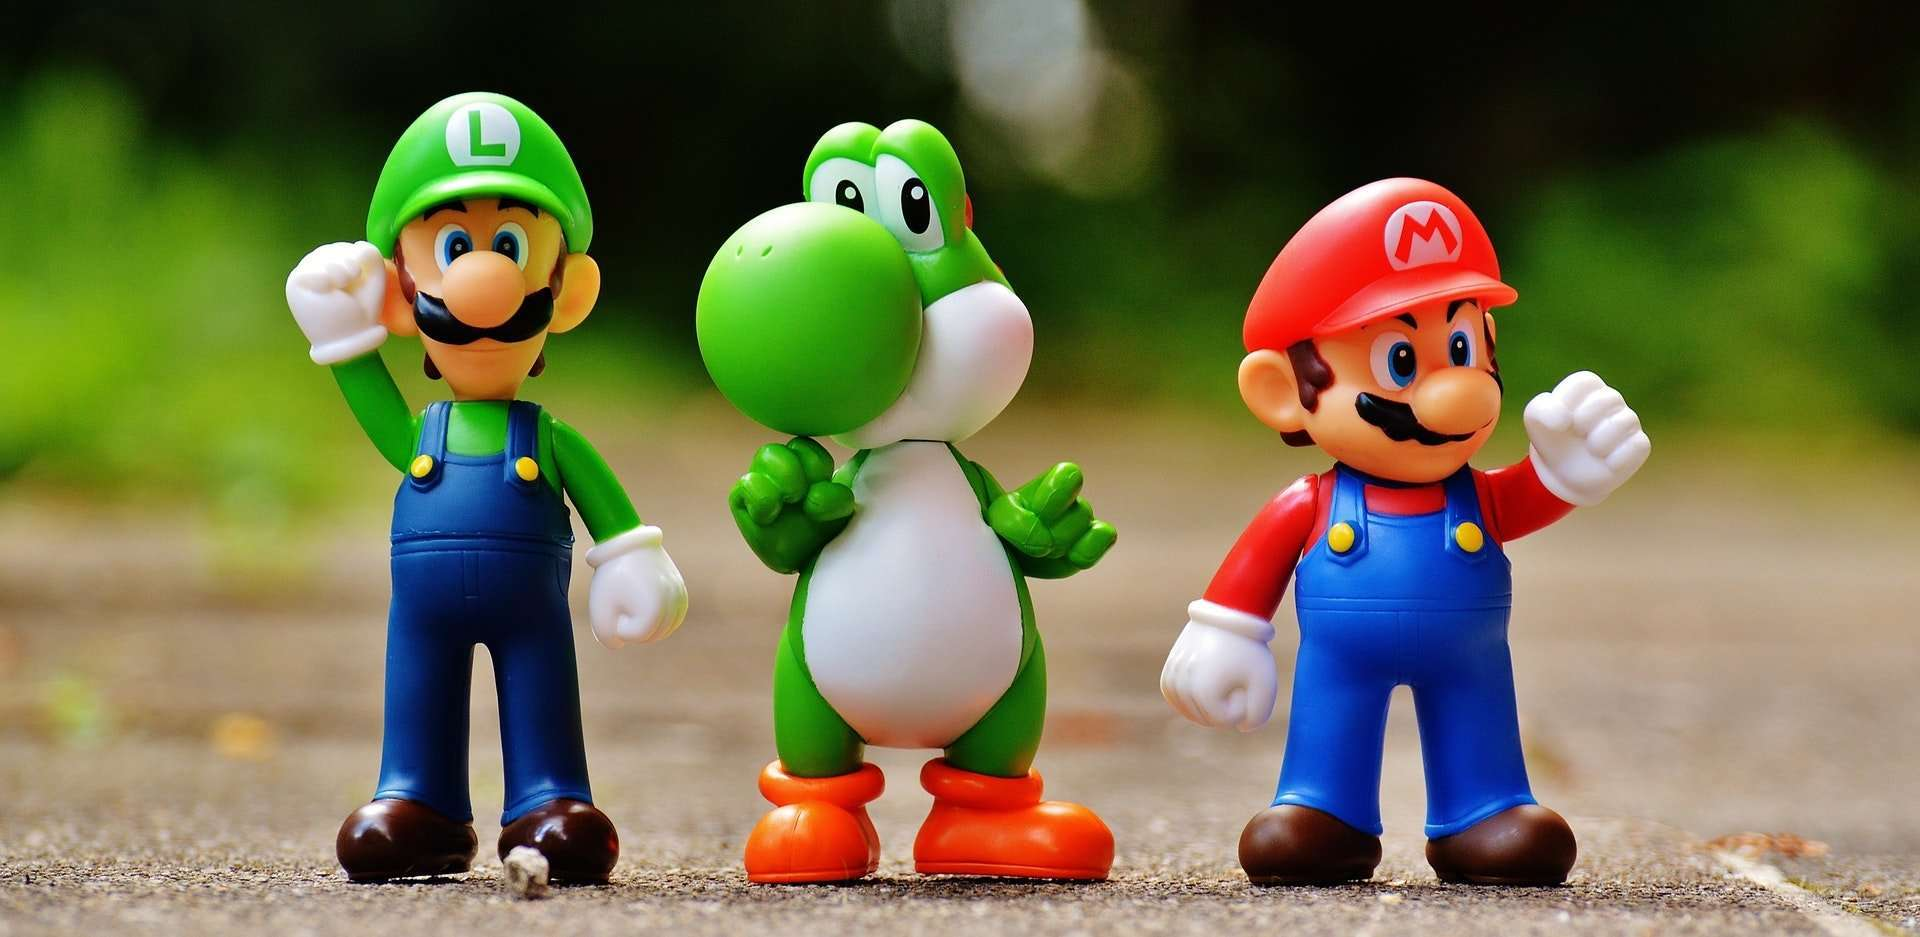 14 Adventures for kids who love Video Games